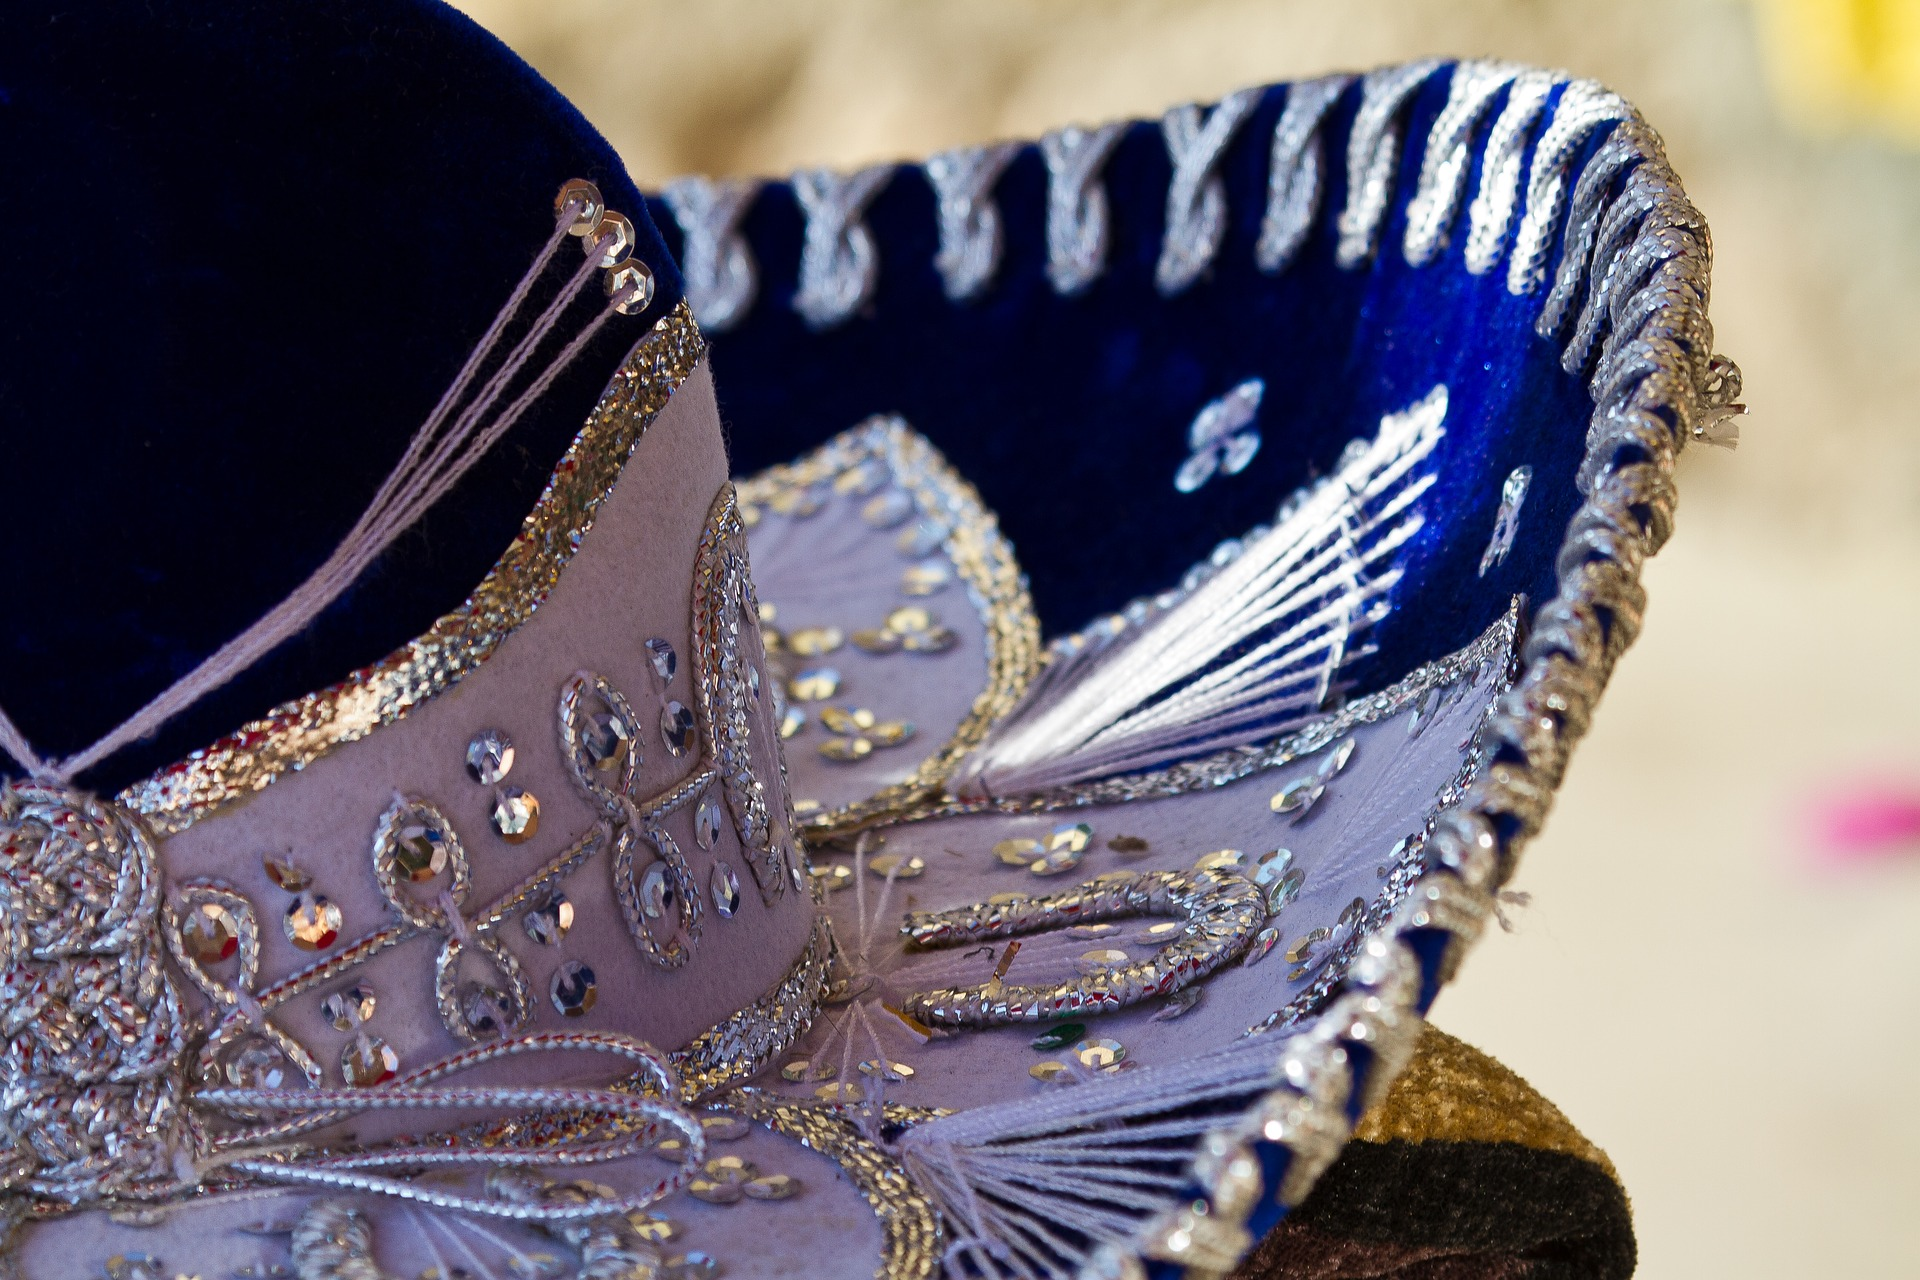 Cinco de Mayo - Extra facts to fill the idle chatter - Scranberry Coop - Vintage Store - Antiques, Collectibles, & More